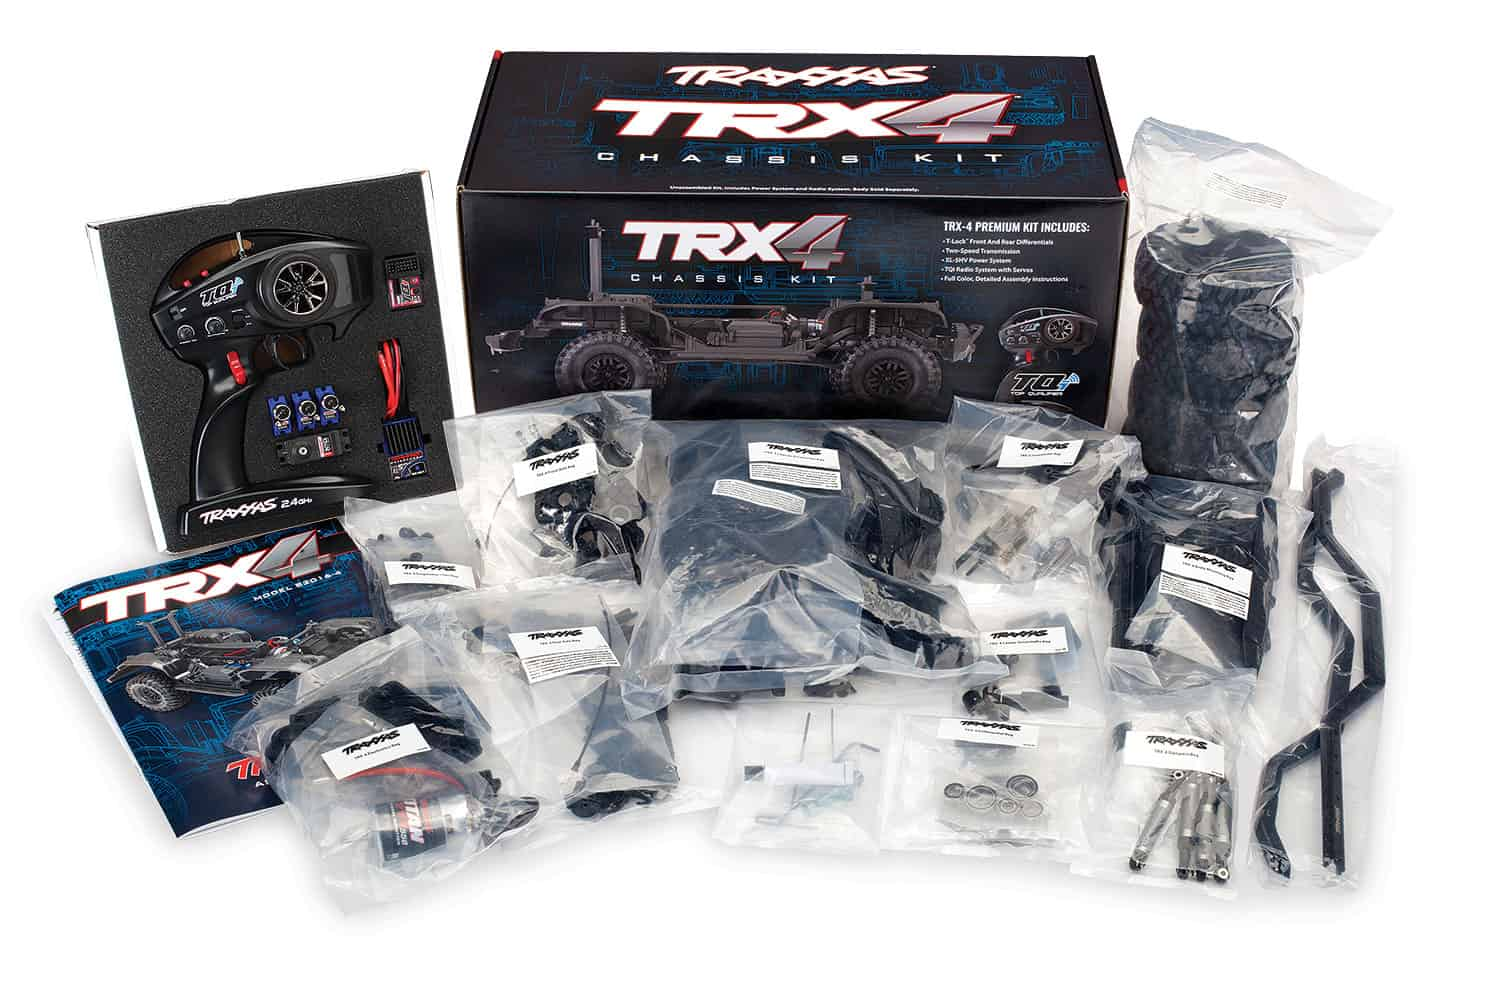 Traxxas TRX-4 Assembly Kit - What's Included